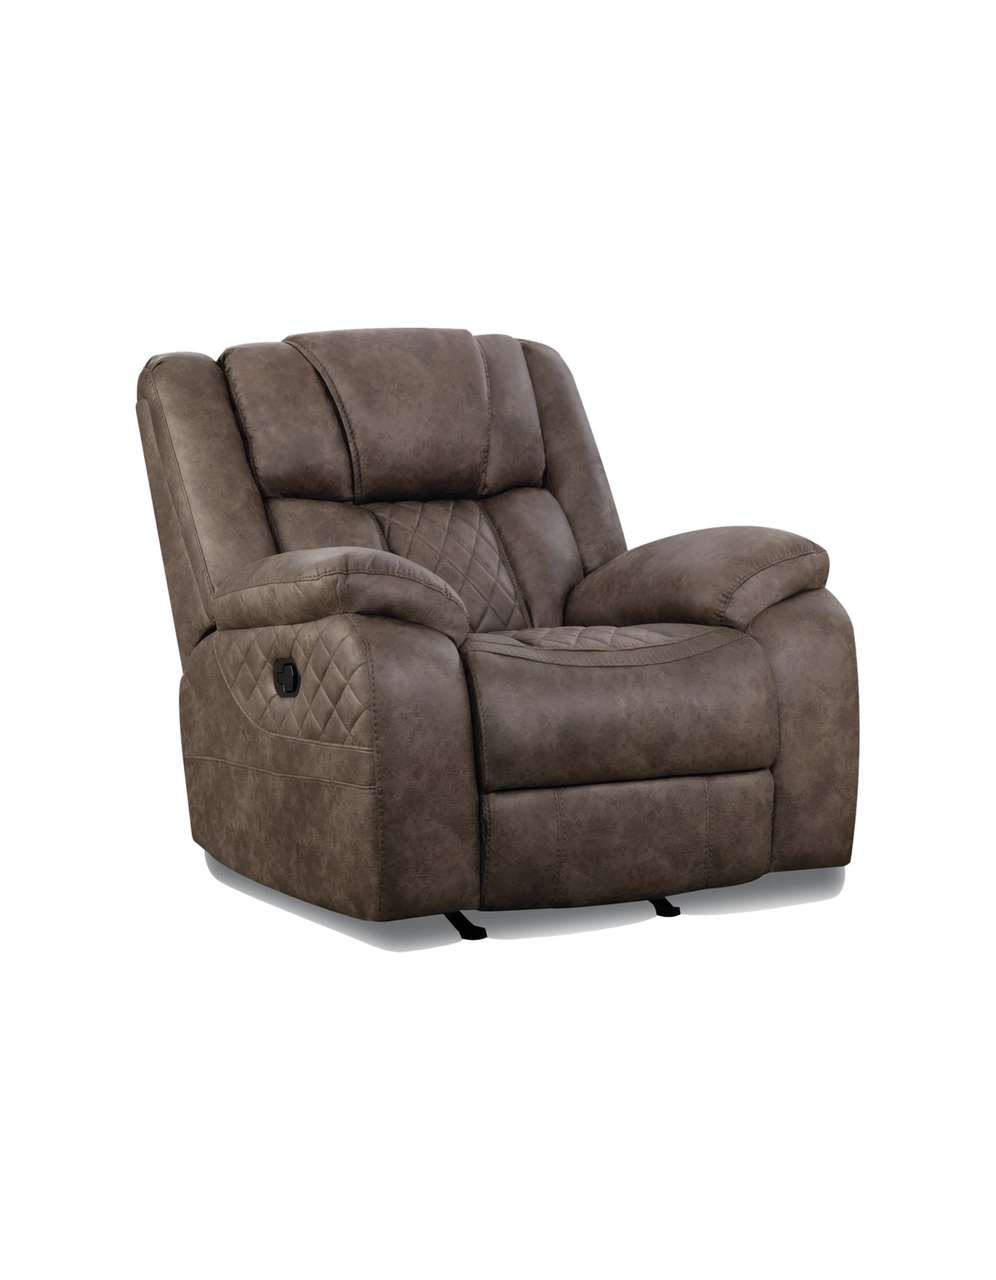 Tundra Ash Rocking Recliner